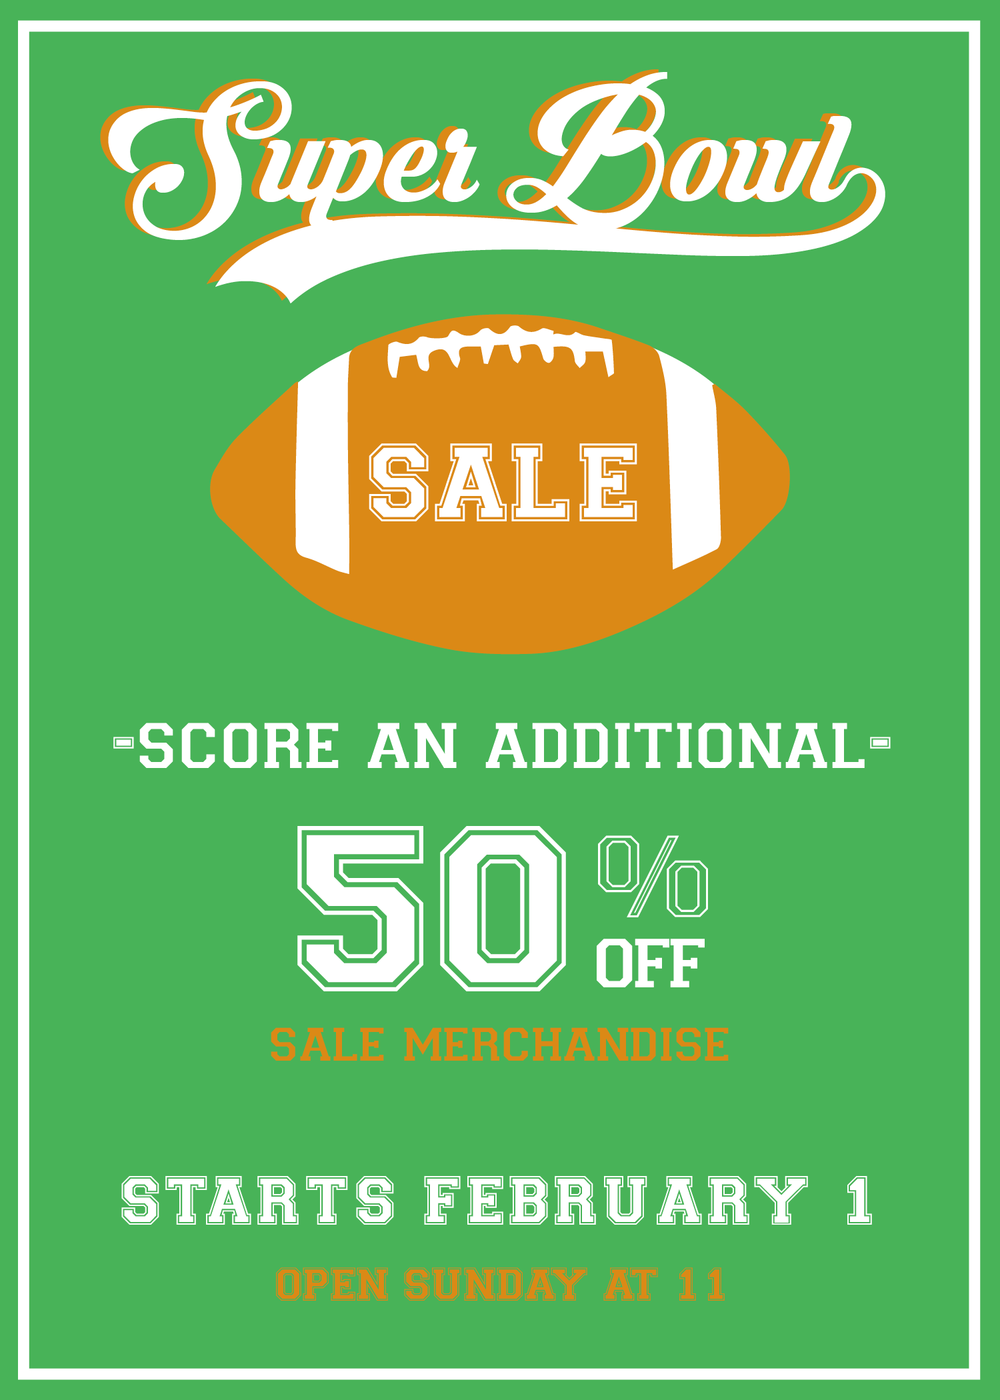 TAKE AN ADDITIONAL 50% OFF SALE MERCHANDISE FEBRUARY 1-4